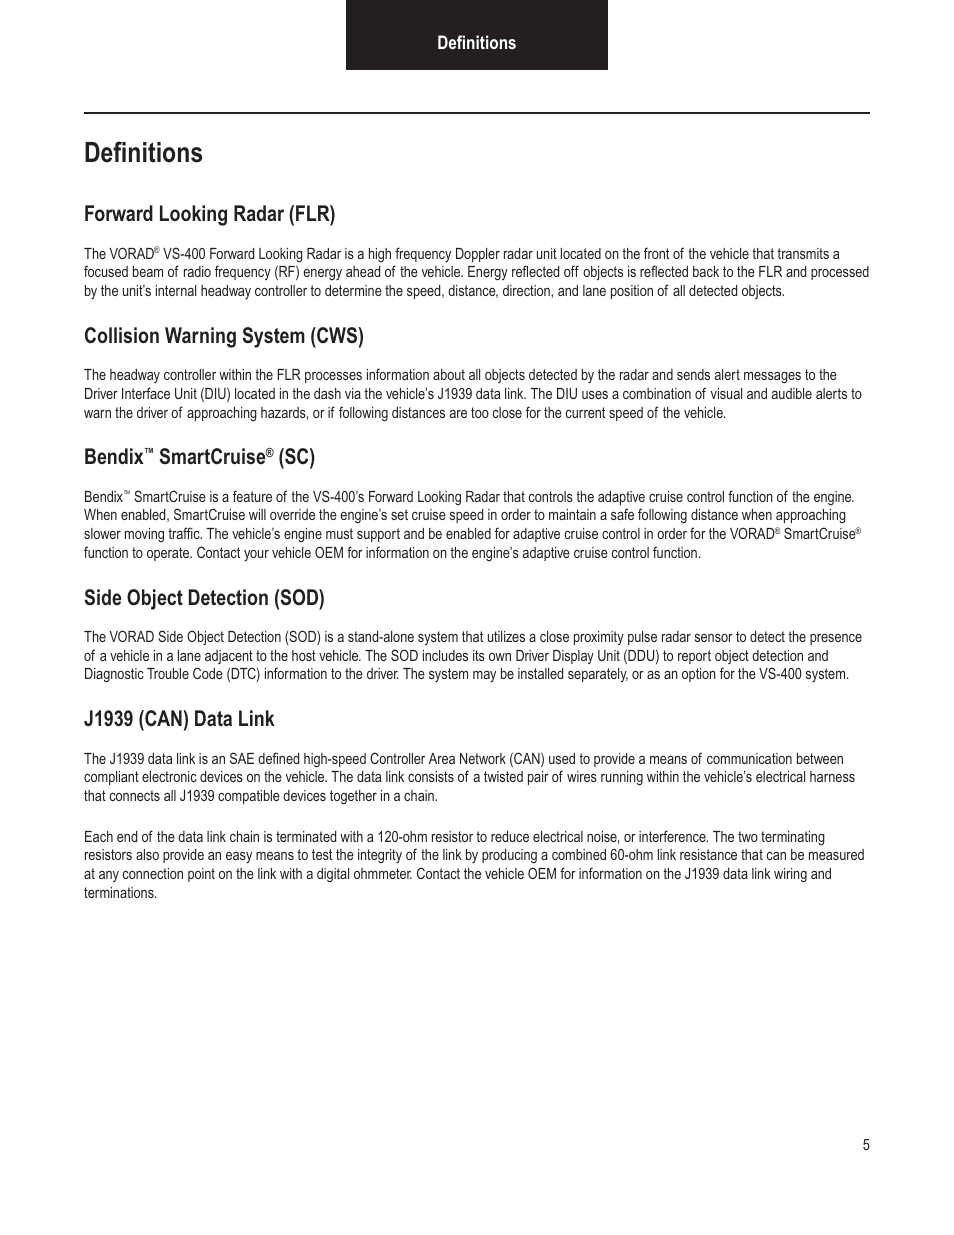 bendix commercial vehicle systems vorad vs 400 installation notes page7 definitions, forward looking radar (flr), collision warning system  at n-0.co